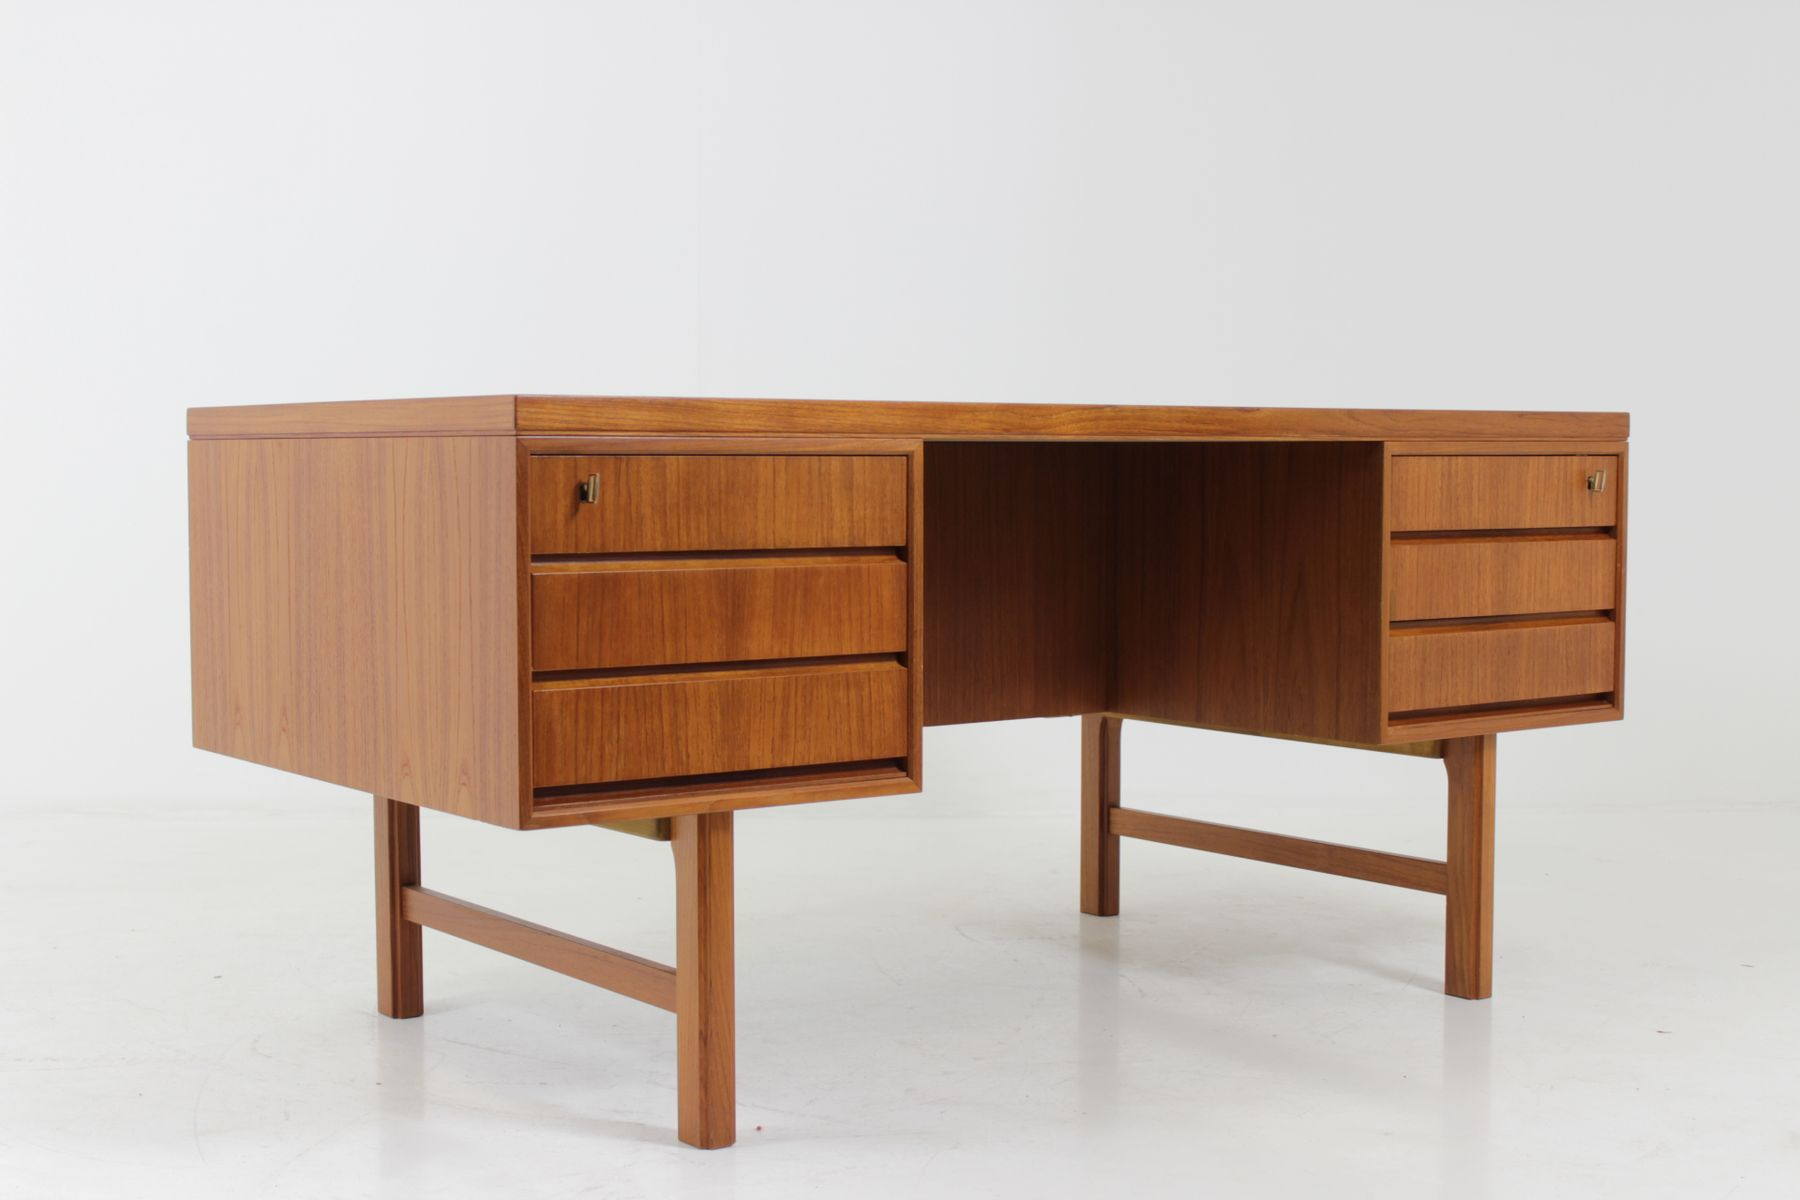 bureau en teck par gunni omann pour omann jun danemark 1960s en vente sur pamono. Black Bedroom Furniture Sets. Home Design Ideas